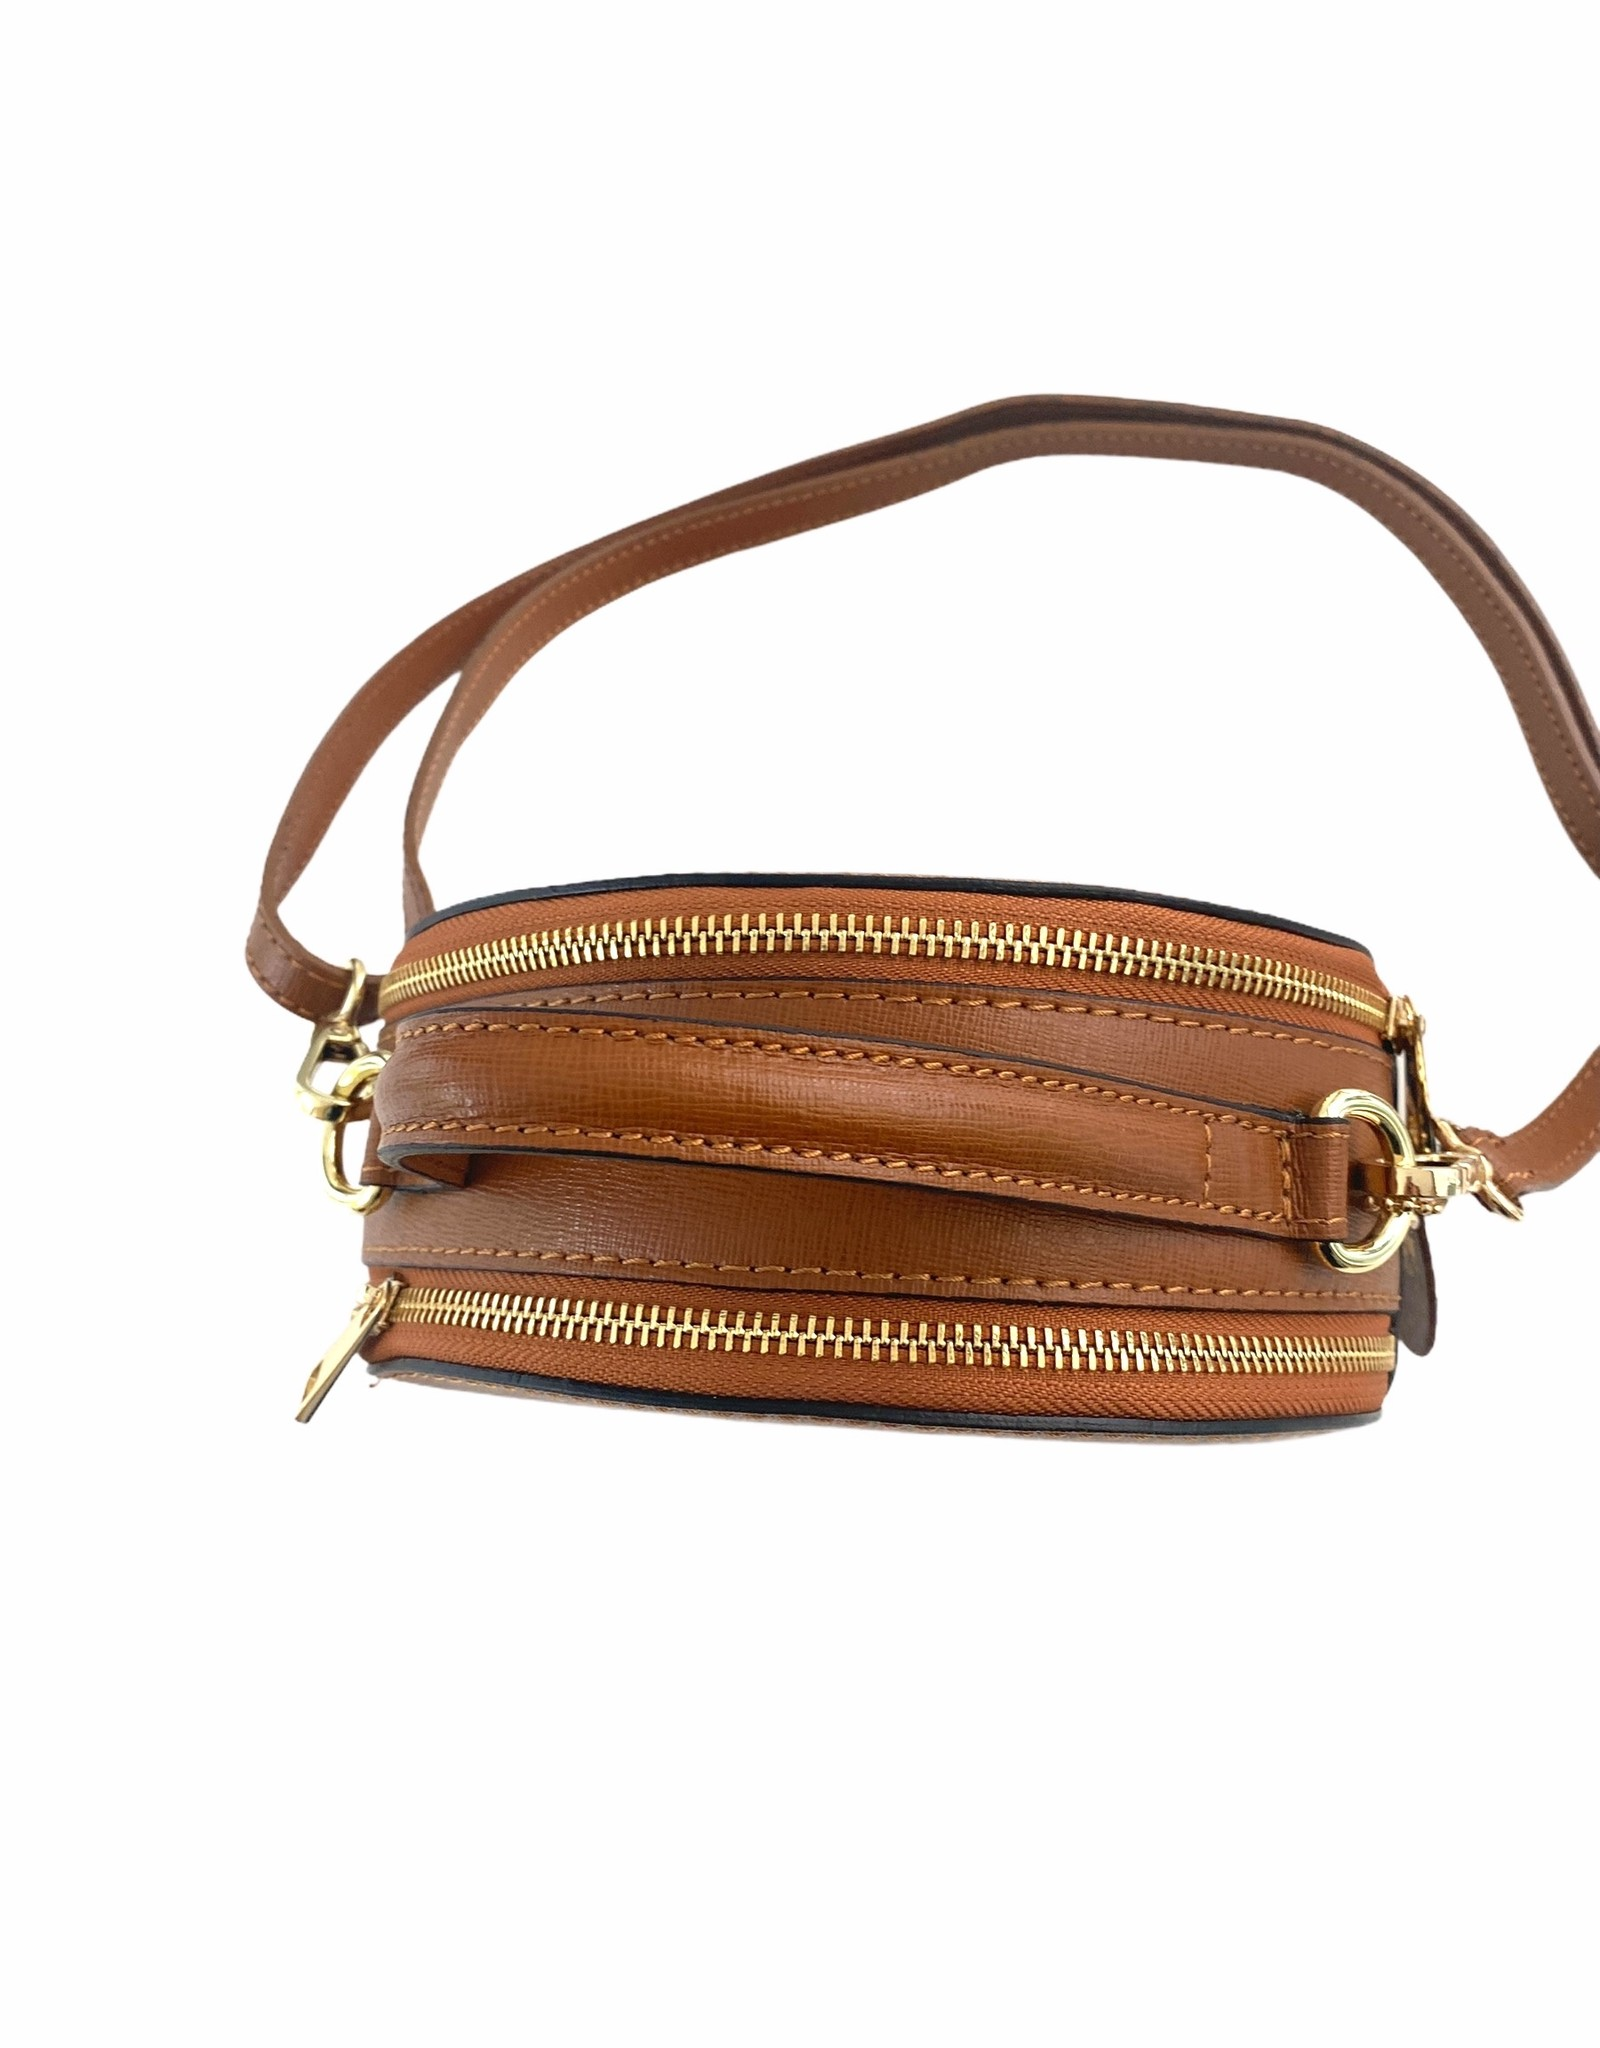 Round leather bag. with two zippers and long shoulderbelt. Headbox model.